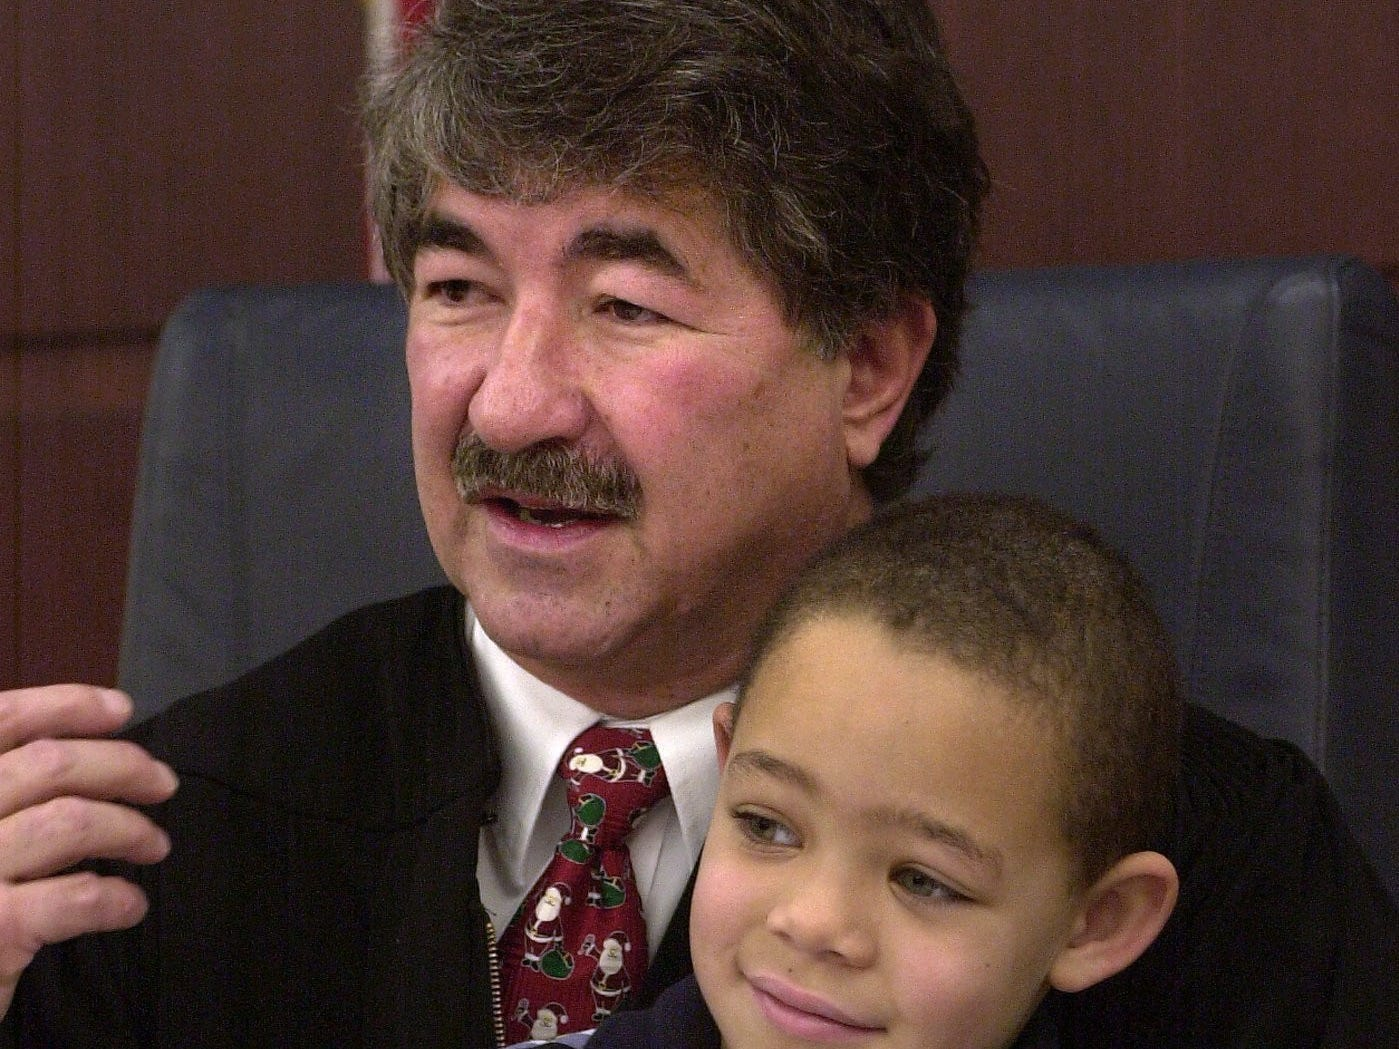 Ty Anthany Adams Allen, 5, is held by Probate Judge George Economy as Ty waits to waits to pound the gavel to finalize his parental adoption by his grandmother, Susan Allen, in Economy's courtroom Dec. 20, 2002.